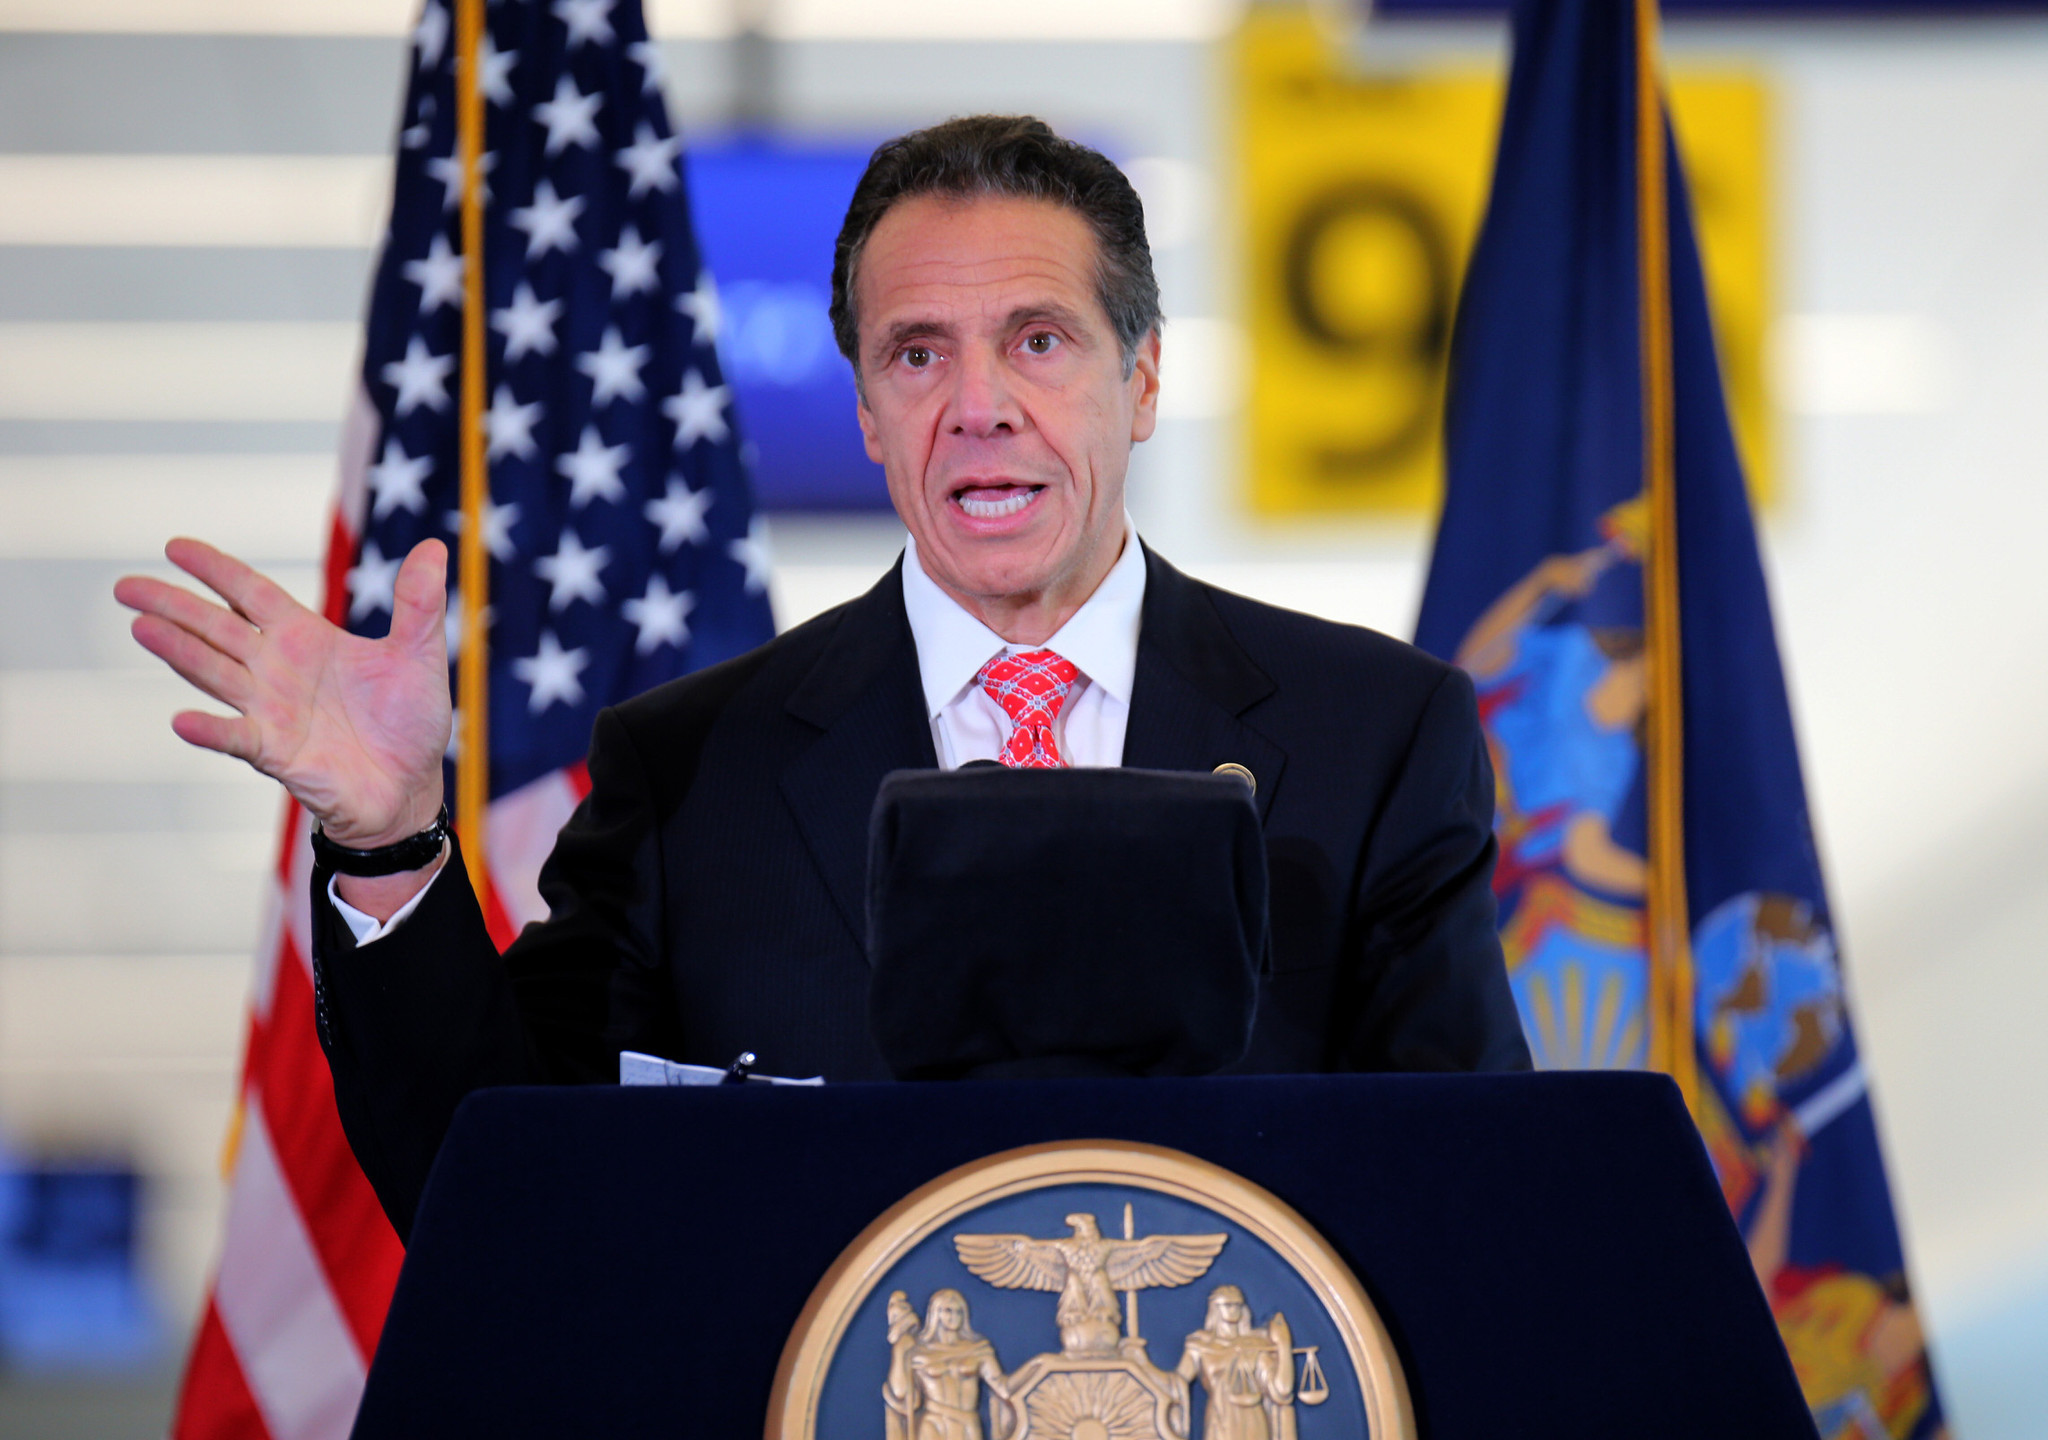 Gov. Cuomo says changes to N.Y. bail laws must happen in budget